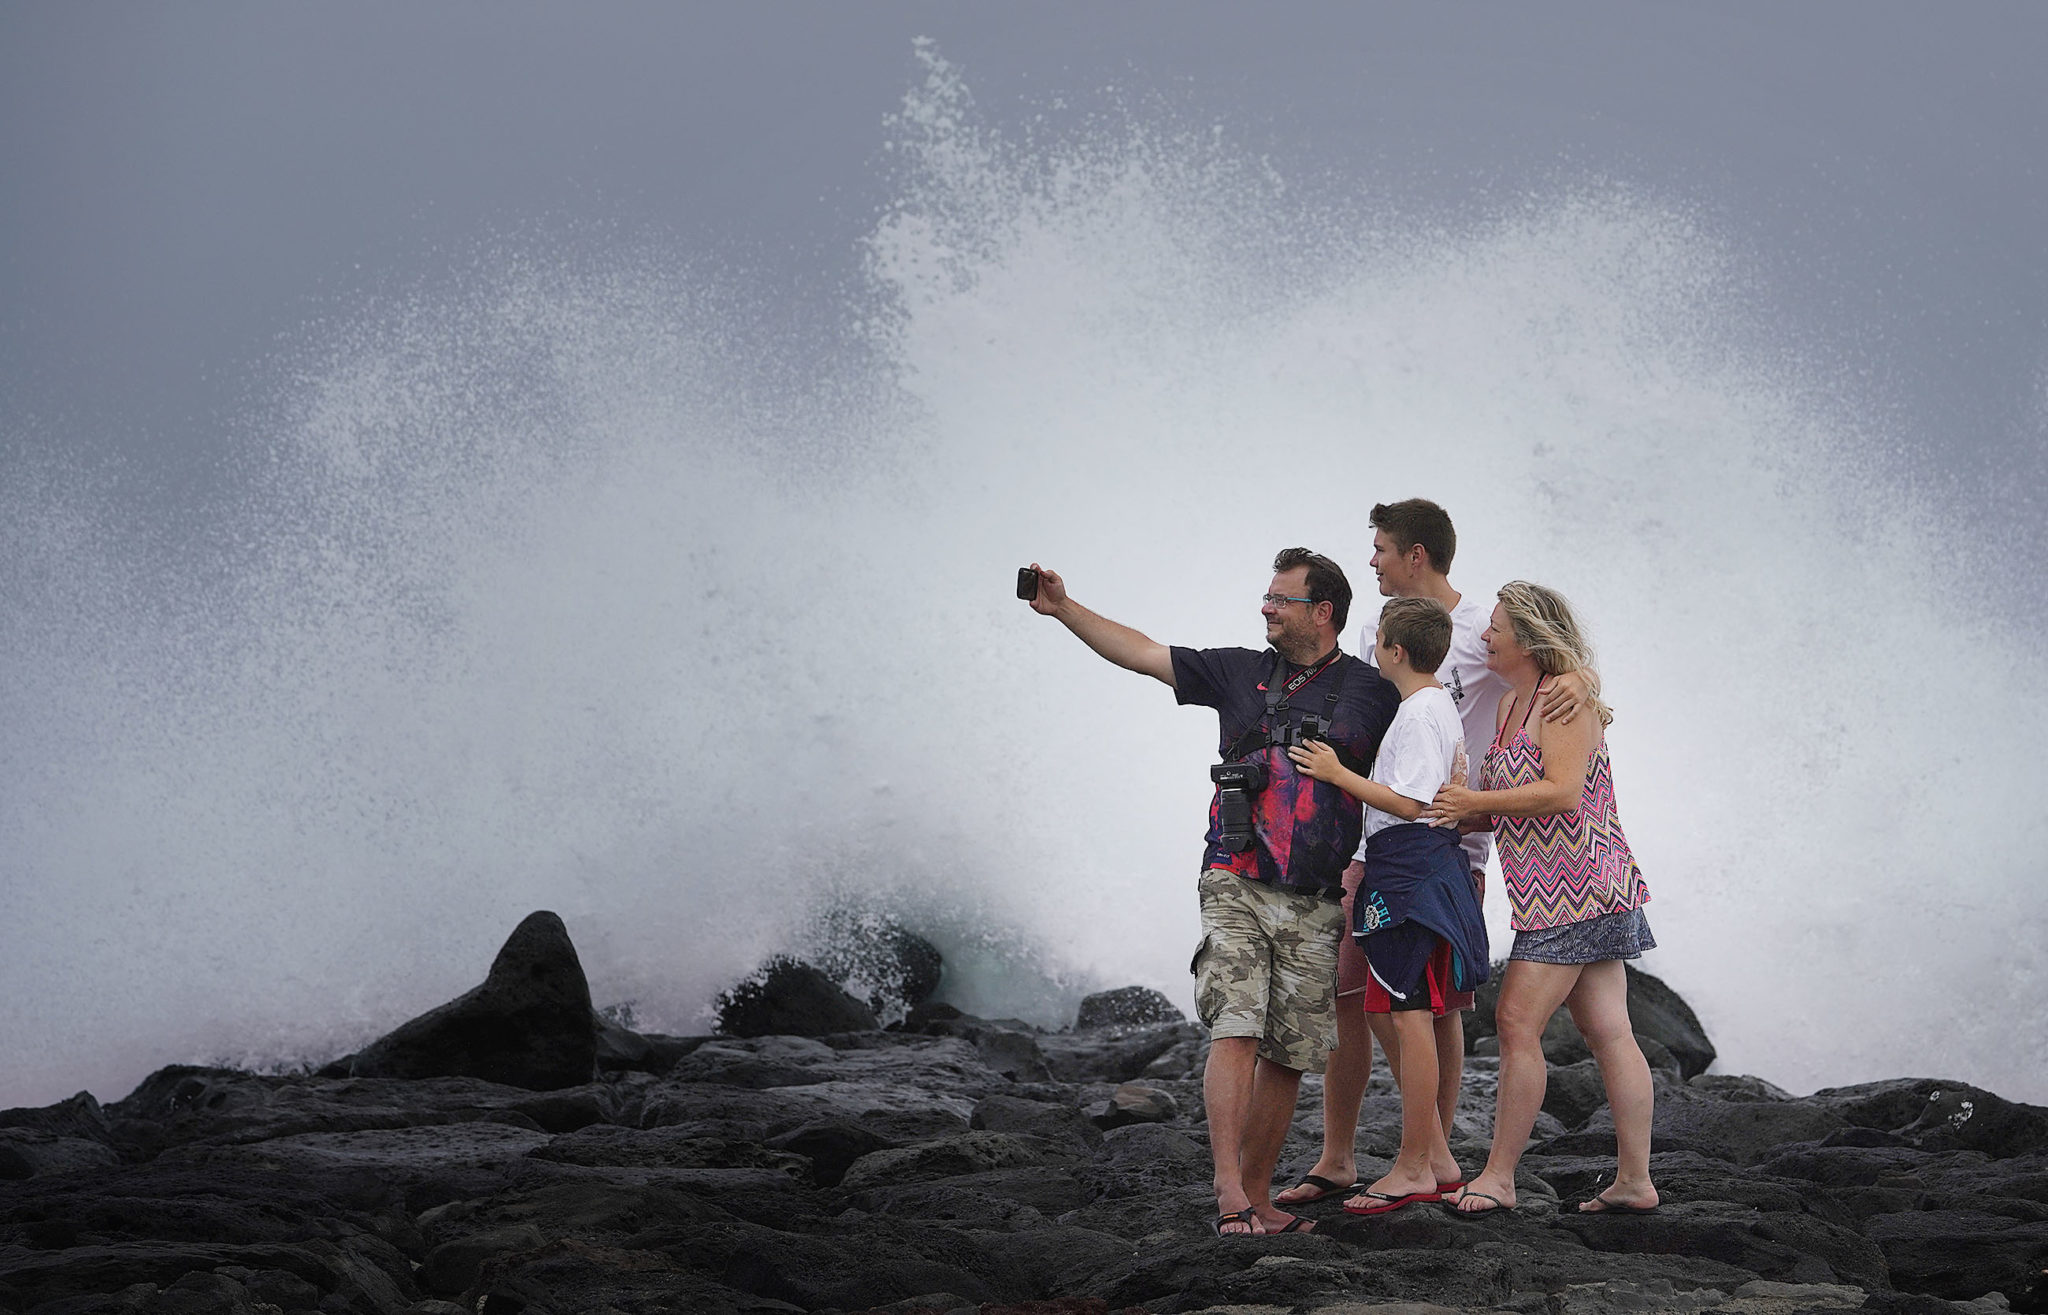 <p>For some, the churning surf in advance of the storm was just one more tourist attraction. That included the Demoersman family visiting from France and taking a selfie with a crashing wave at Magic Island. Photograph by Cory Lum/Civil Beat</p>